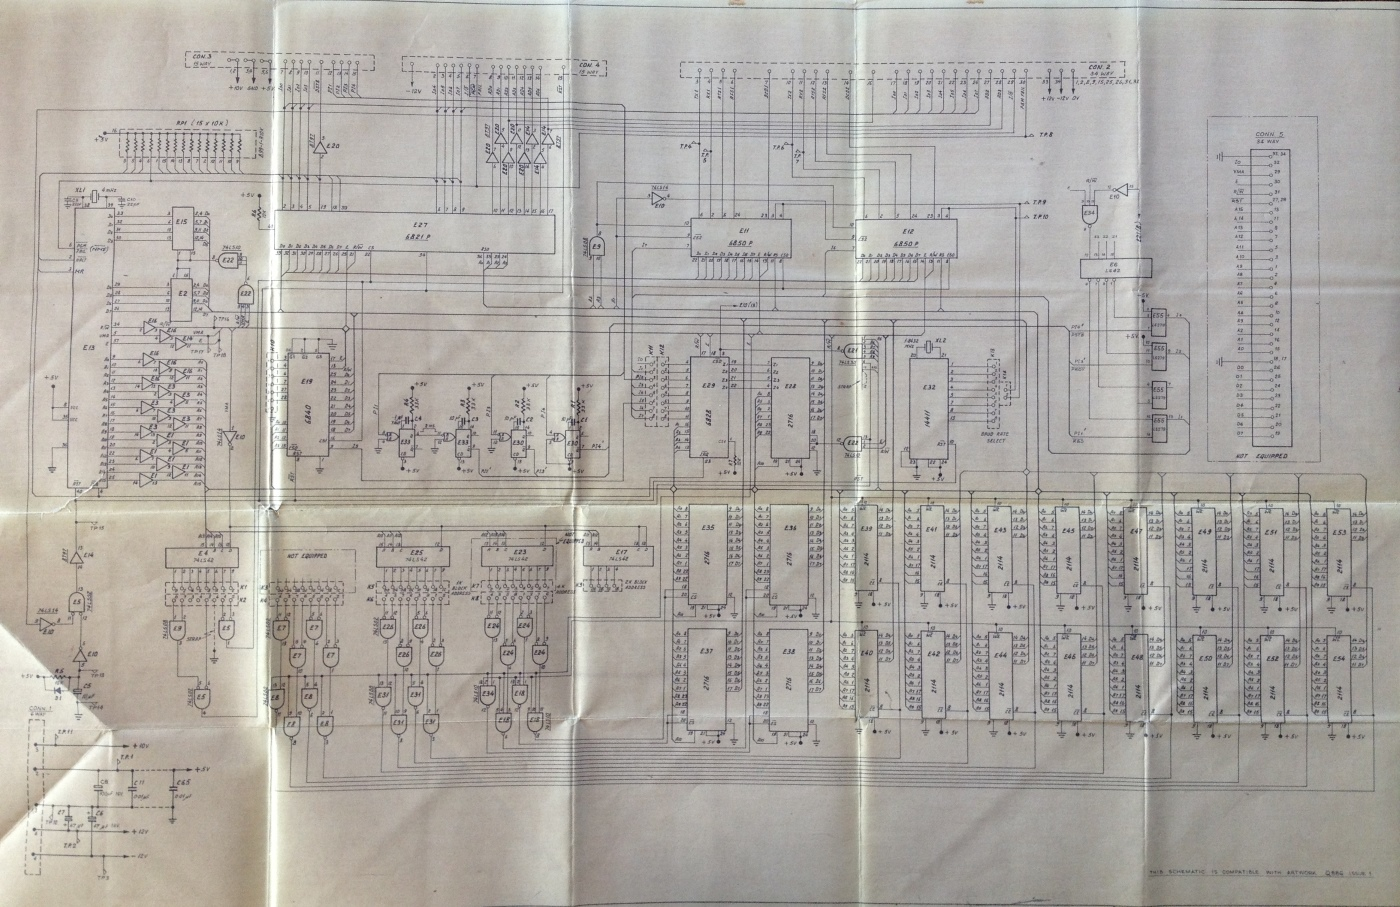 Totalizator History View Image A J22 Tim M6800 Wiring Diagram Of The Processor Pcb Circuit